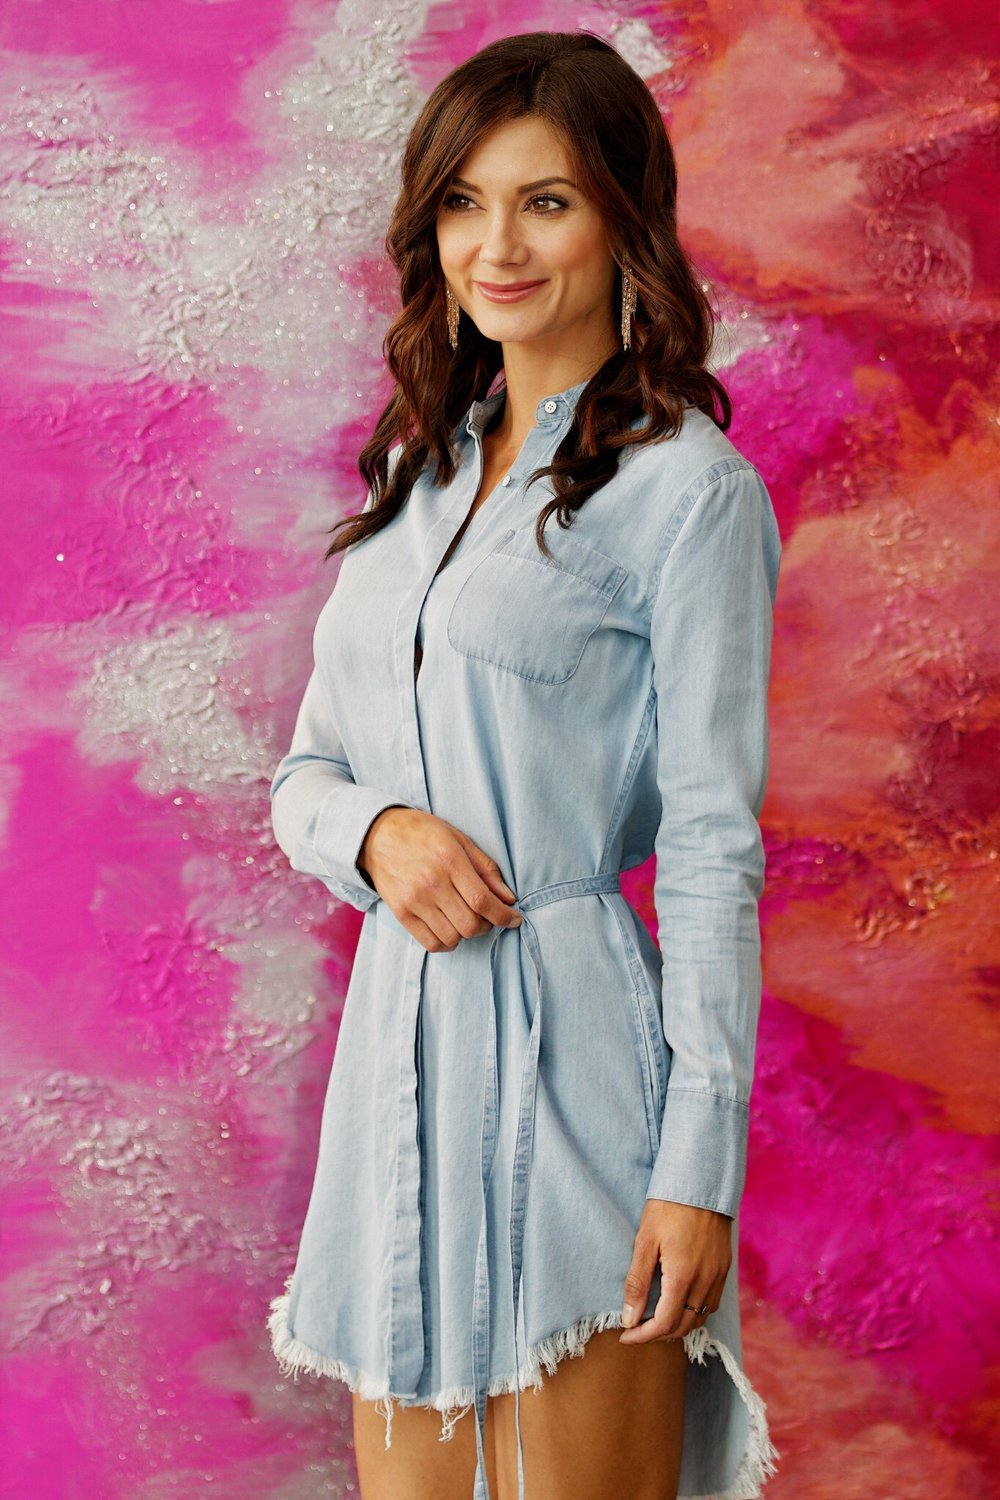 The Blue Shirt Shop Prince & Mott Dress, Midwest Chambray- Available in store